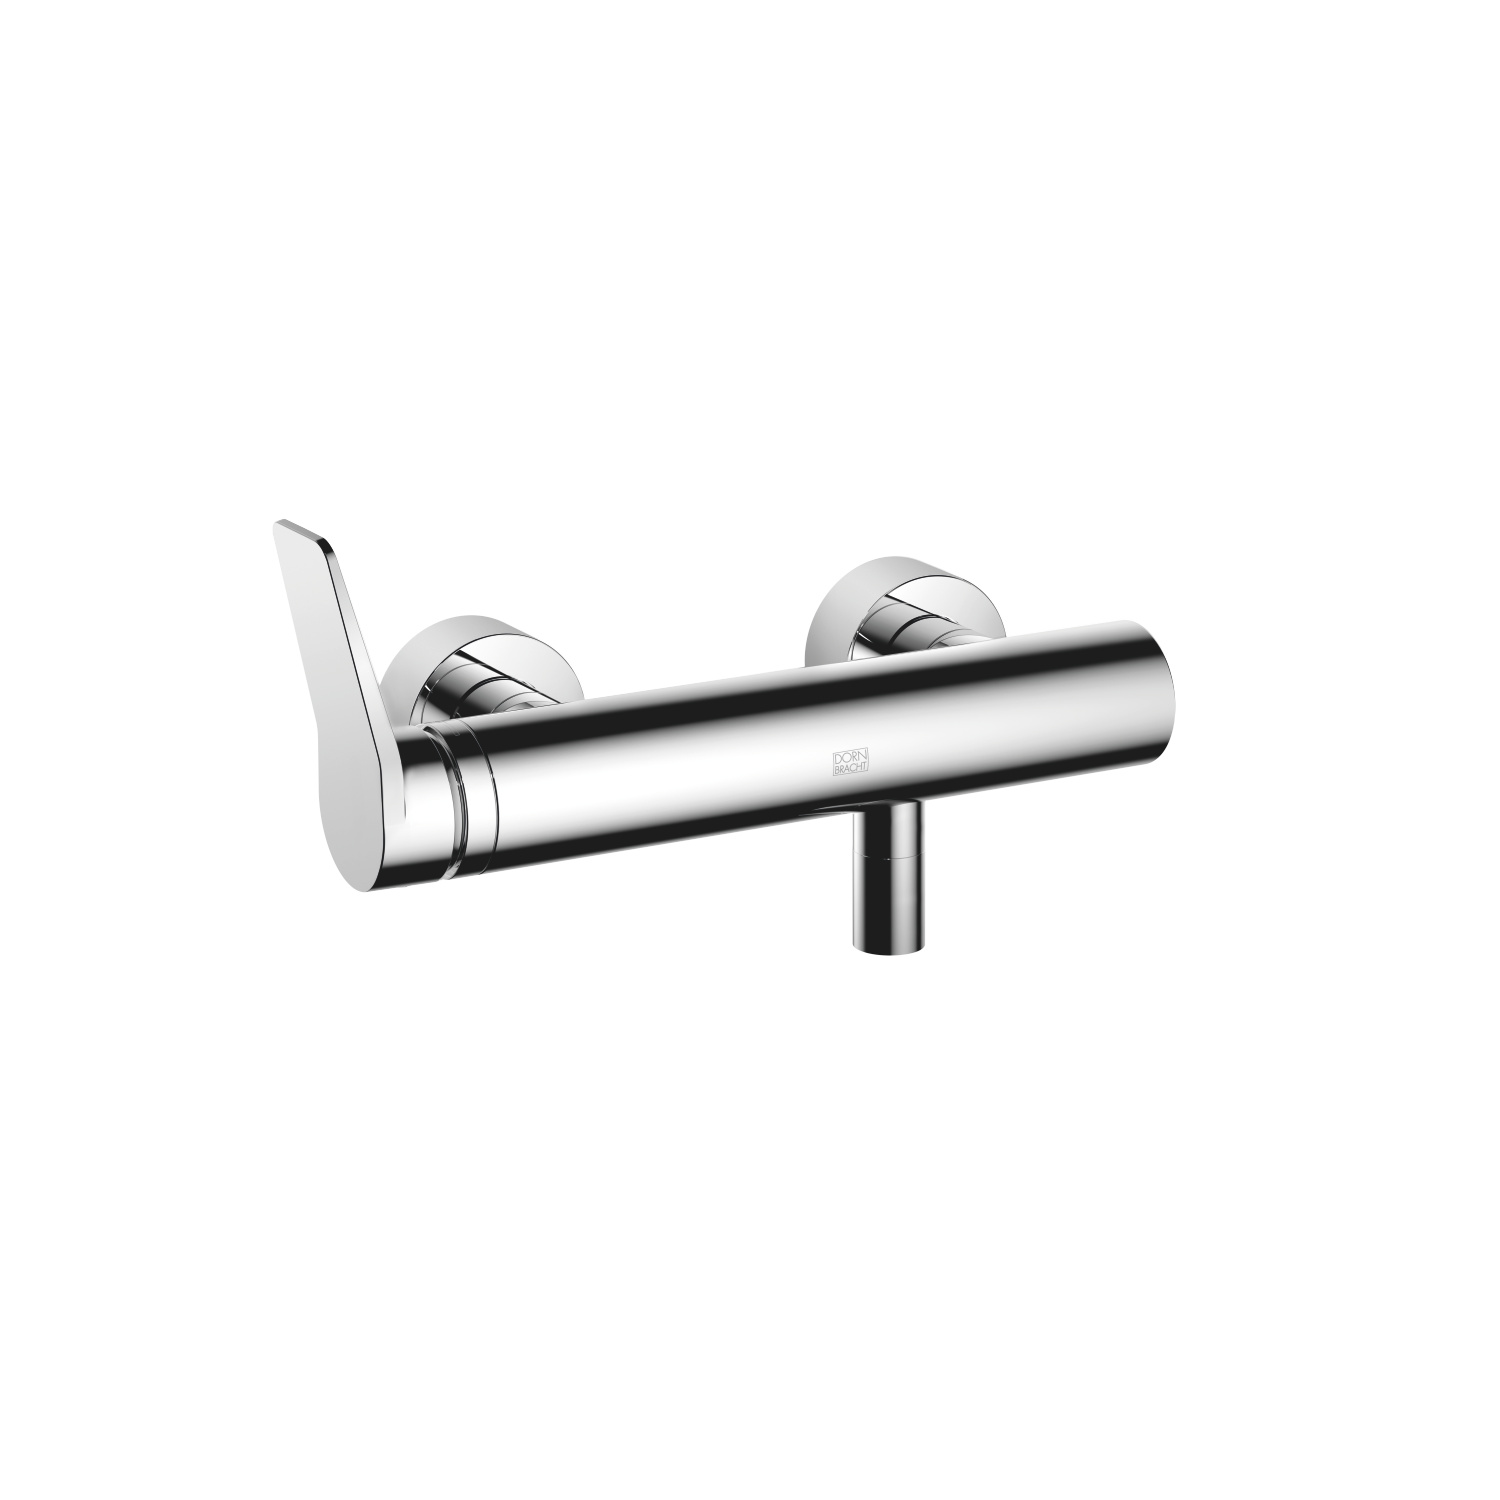 Single-lever shower mixer for wall mounting - polished chrome